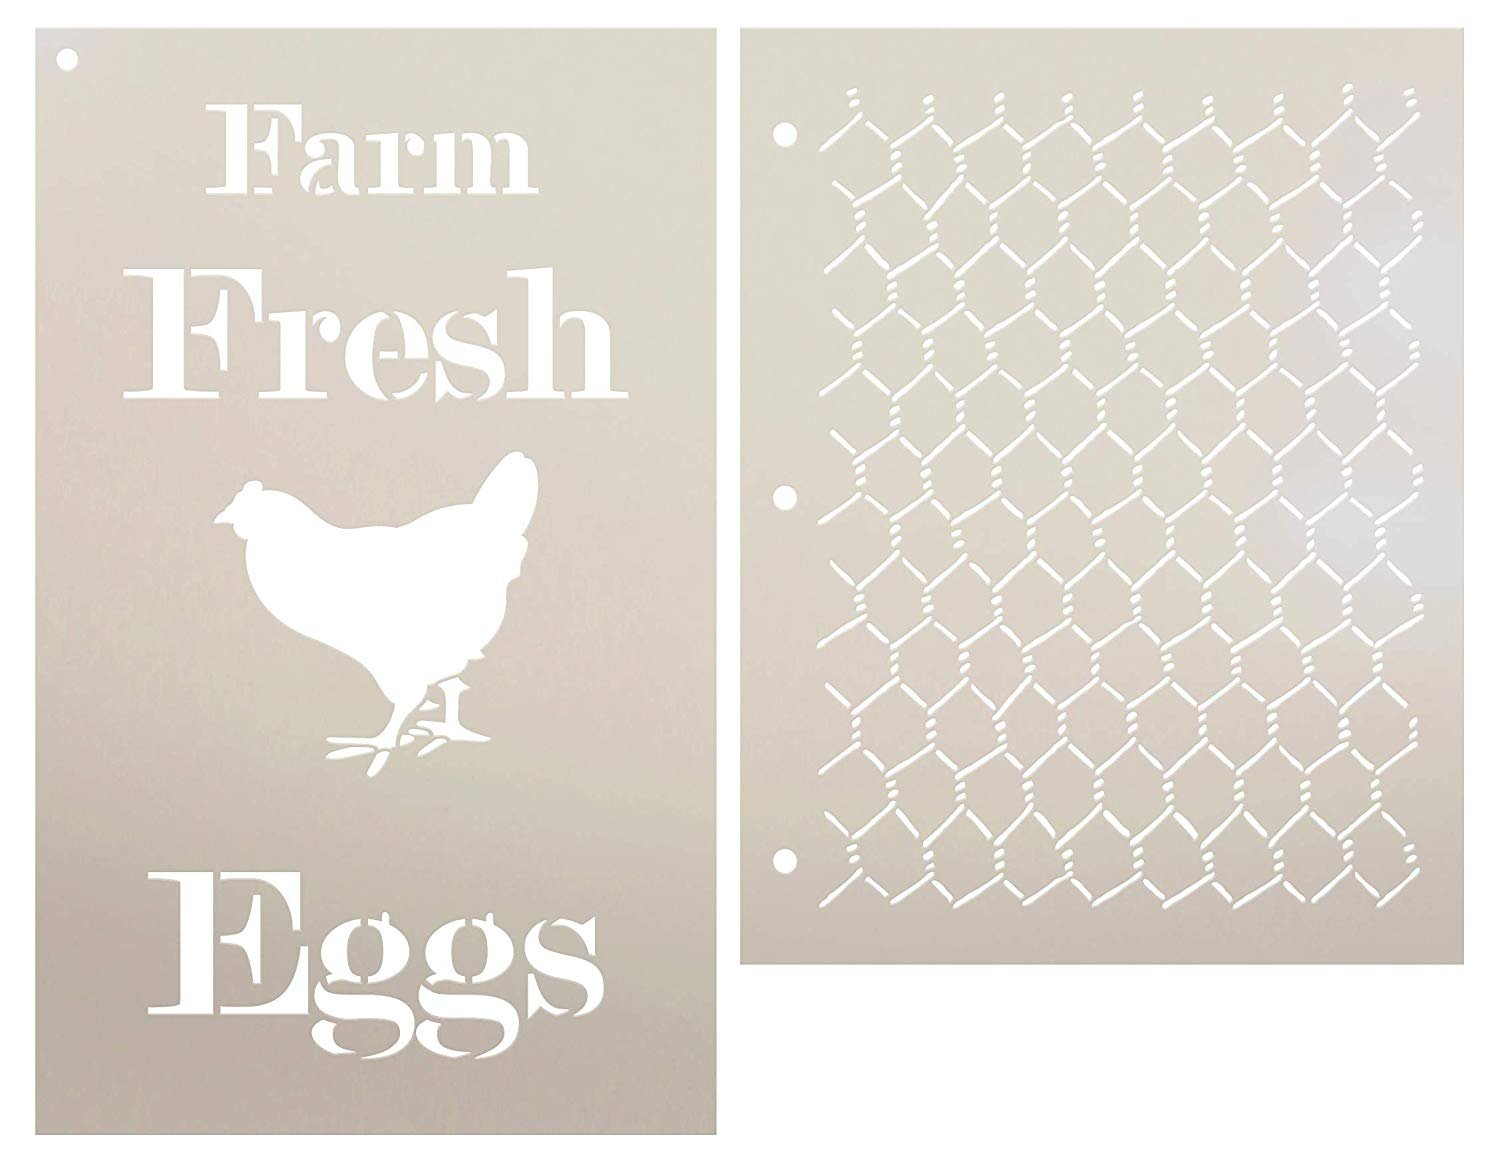 Farm Fresh Eggs Chicken Wire Stencil Set - 2 Piece by StudioR12 | Reusable Mylar Template | Use to Paint Wood Signs - Walls - Tables - DIY Kitchen Decor